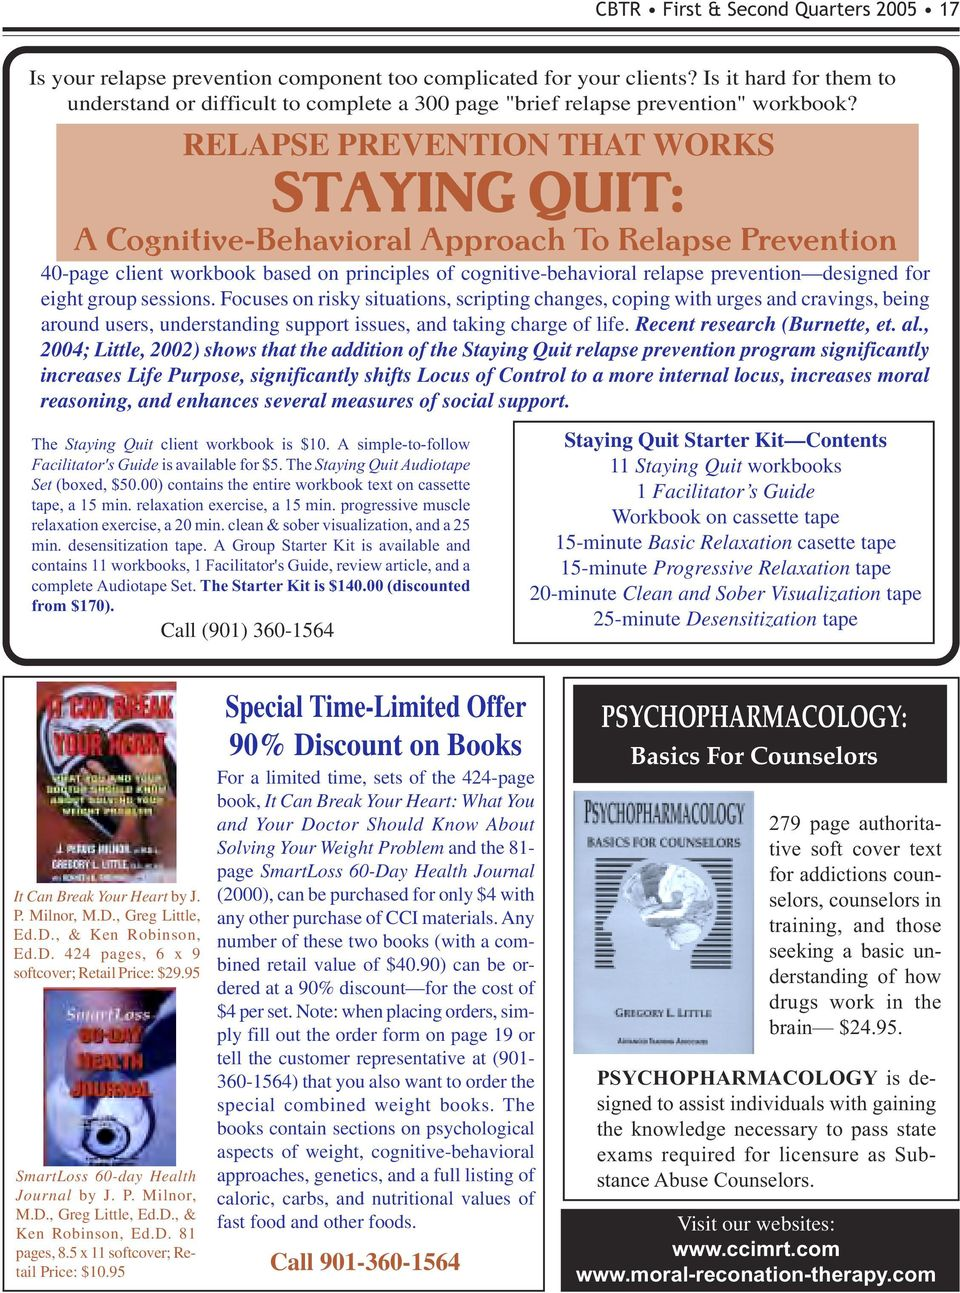 A simple-to-follow Facilitator's Guide is available for $5. The Staying Quit Audiotape Set (boxed, $50.00) contains the entire workbook text on cassette tape, a 15 min. relaxation exercise, a 15 min.